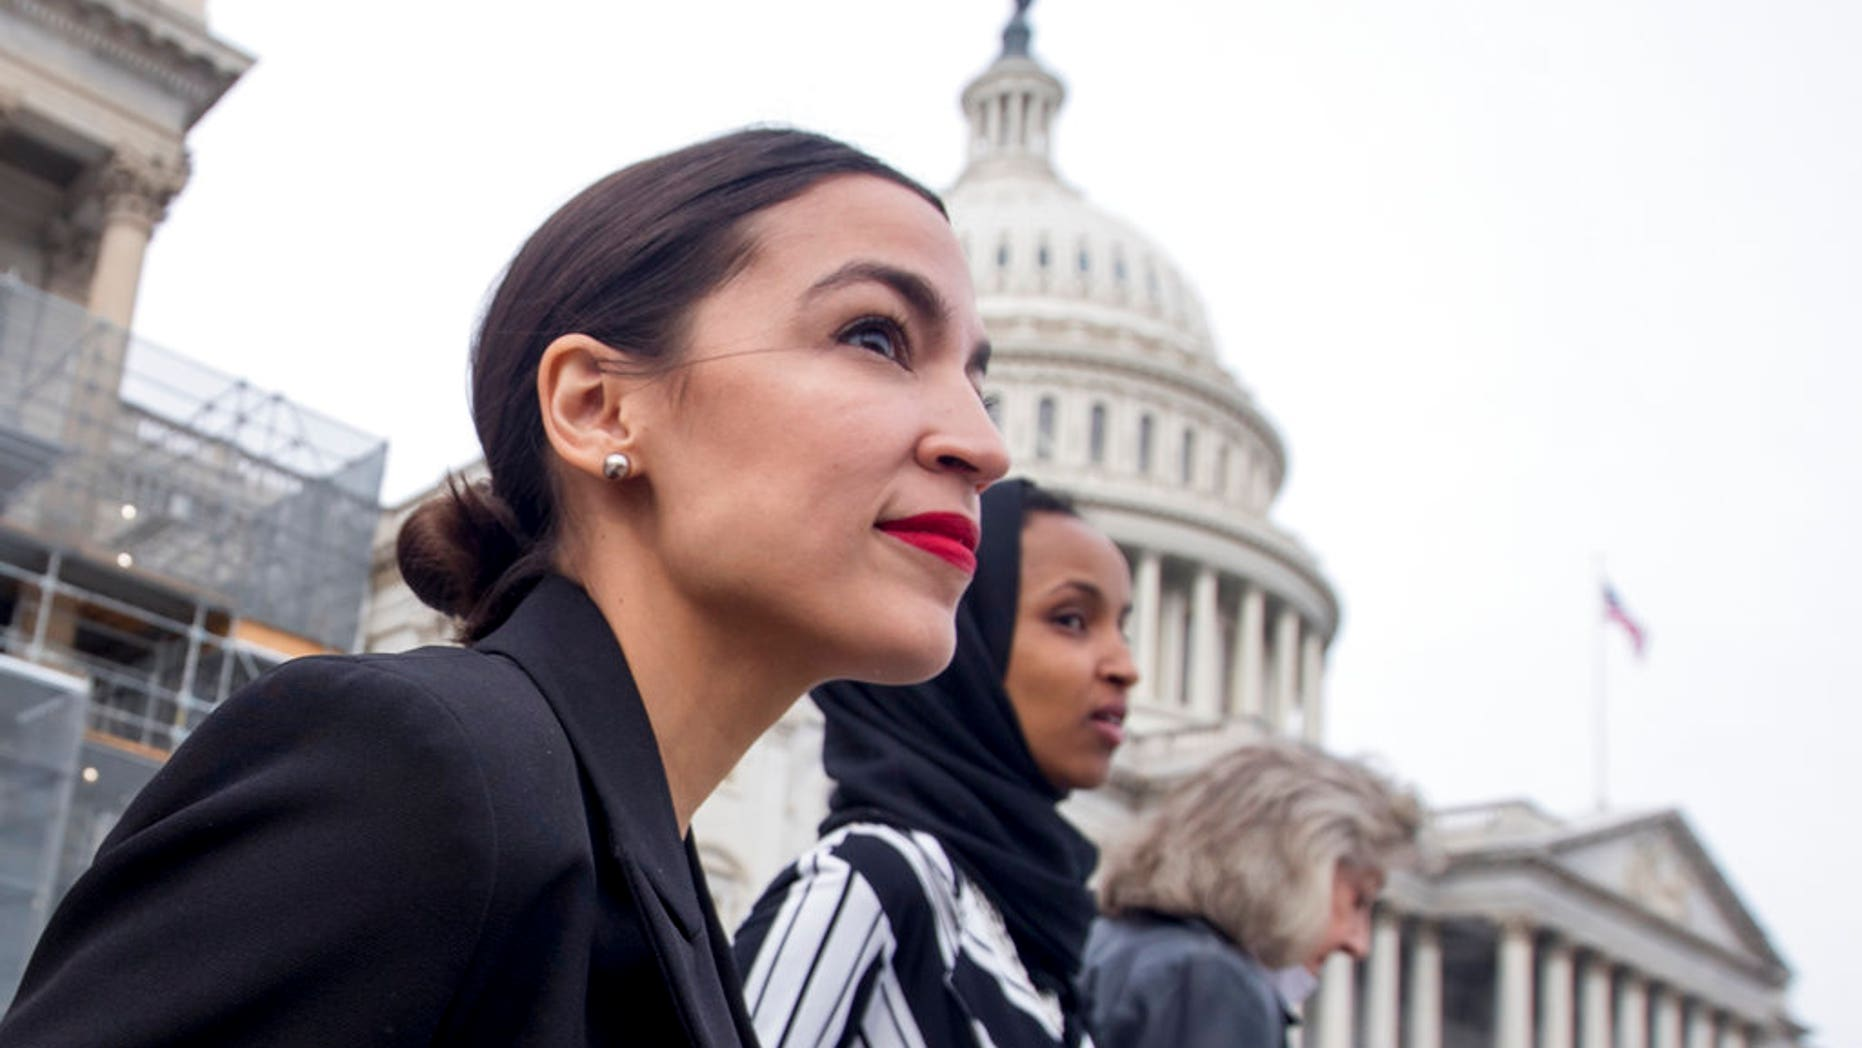 Ocasio-Cortez Criticized After Failing to Provide Workers' Compensation Coverage